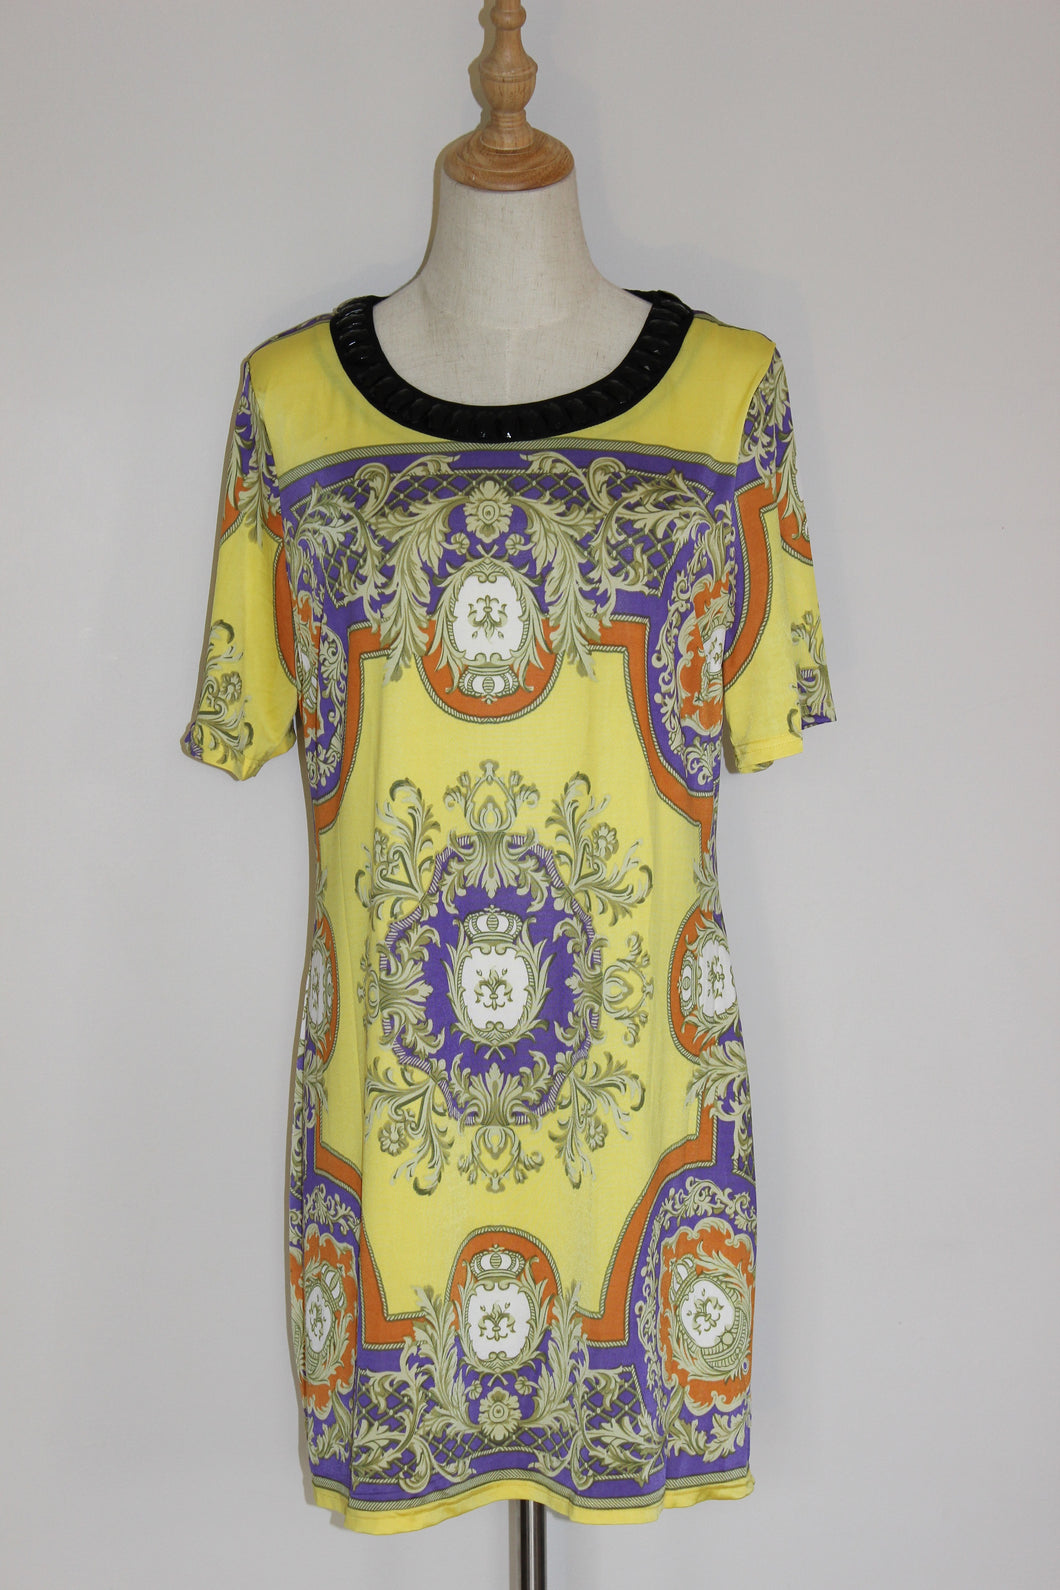 Misu 'Woodrose' Dress Size L - CLEARANCE